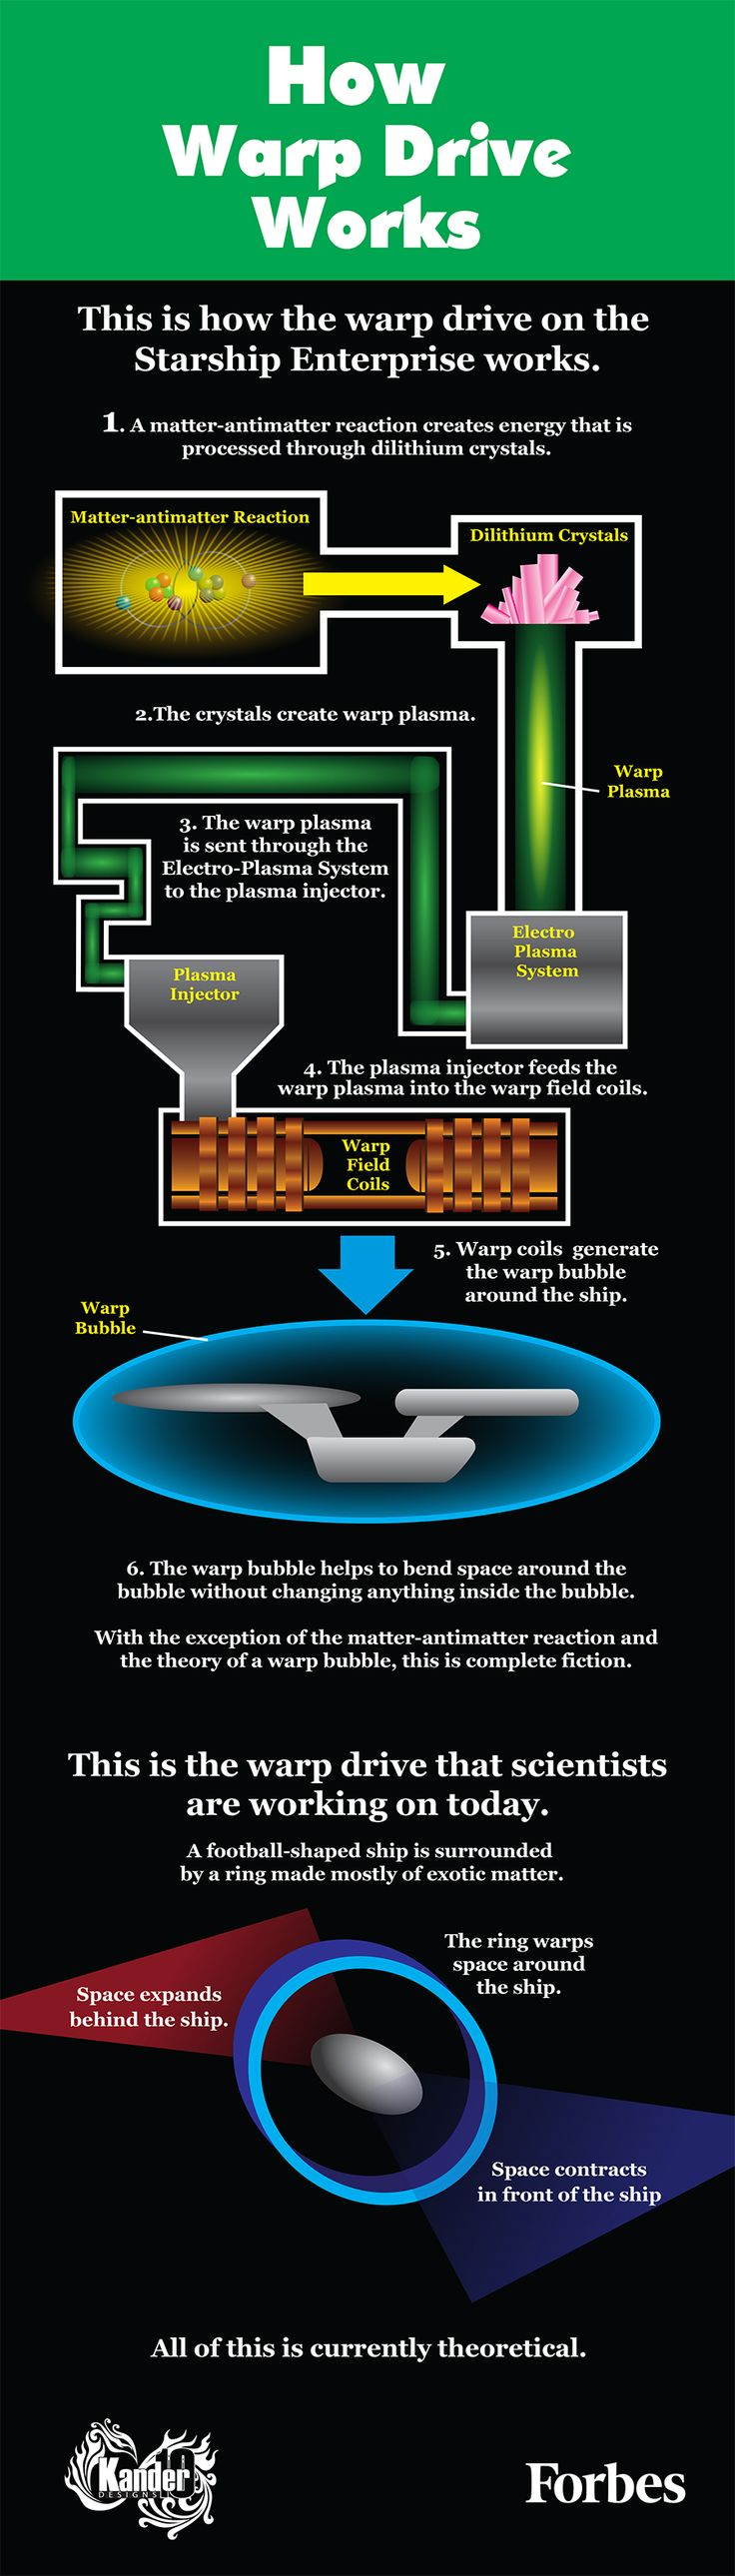 How Warp Drive Works #infographic